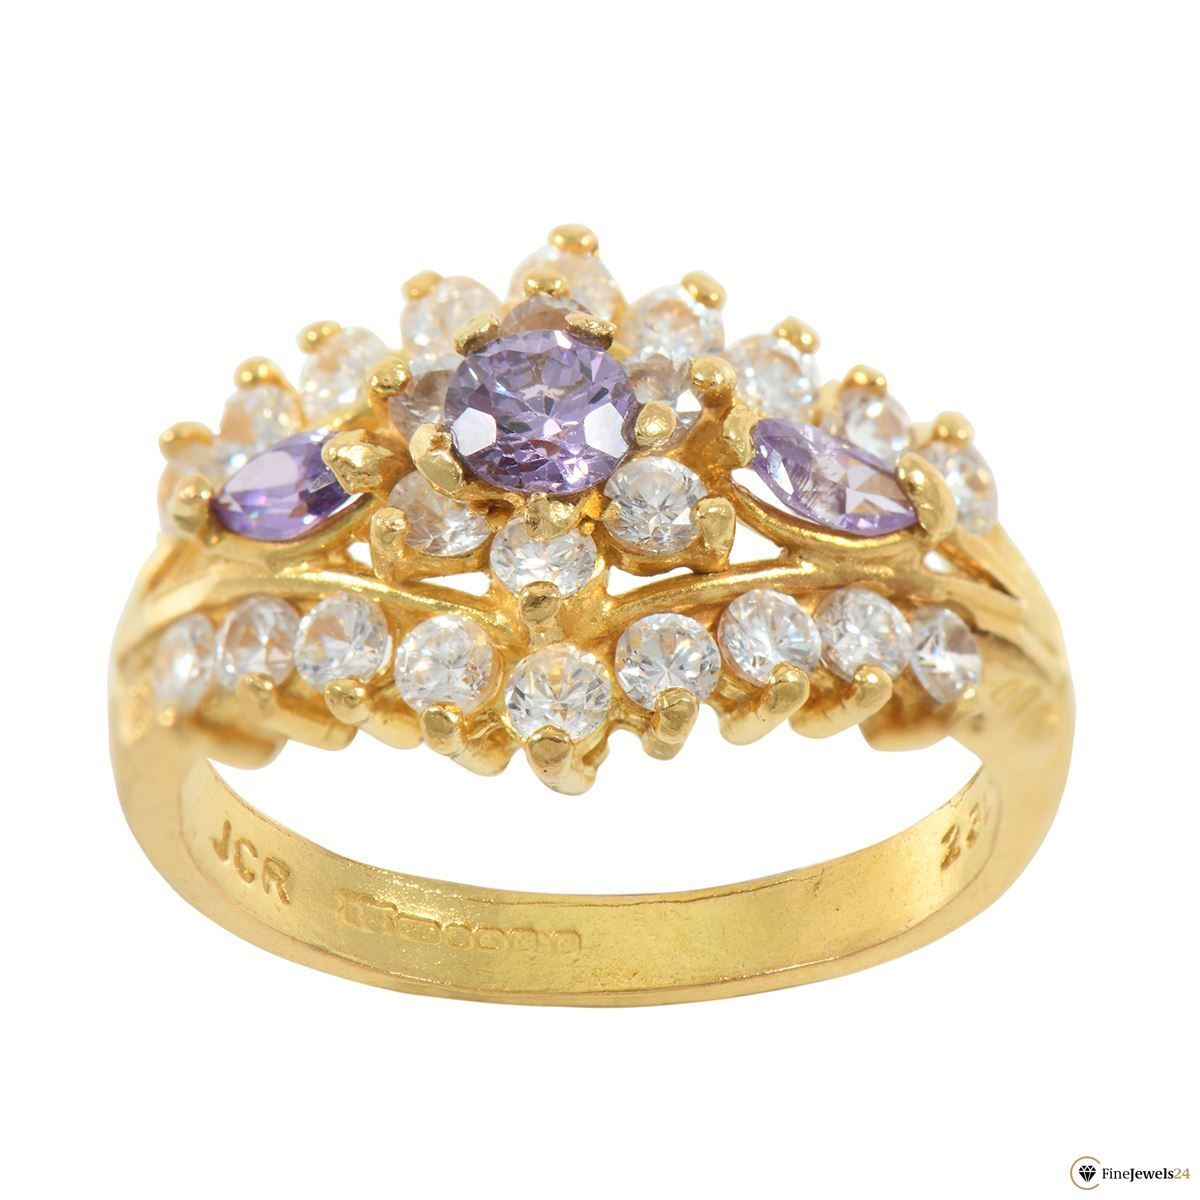 22ct yellow gold cluster ring ladies amazing jewelry